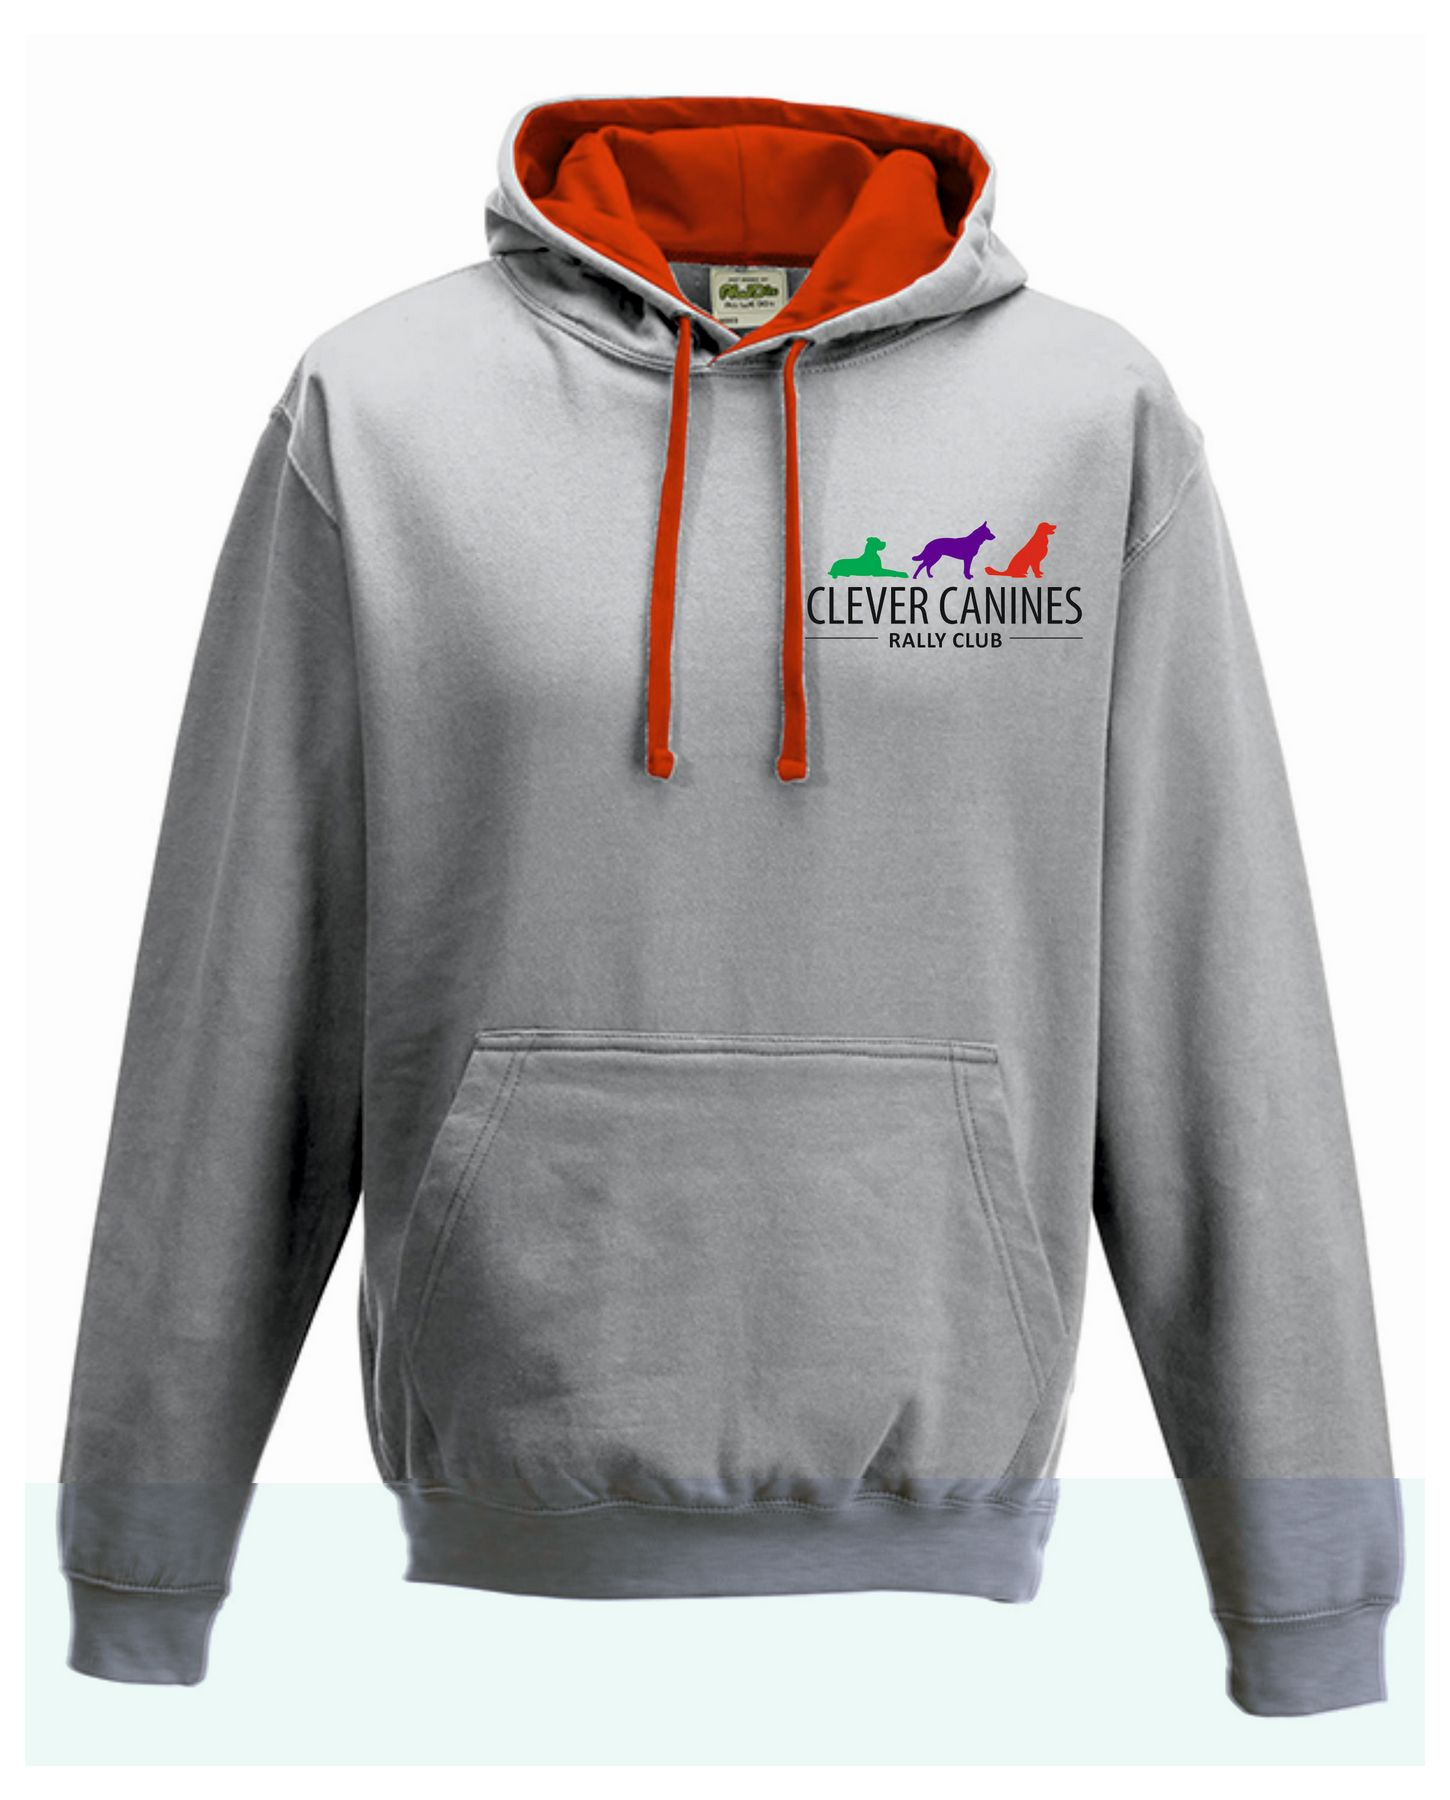 Clever Canines Rally Club Unisex Varsity Hoodie